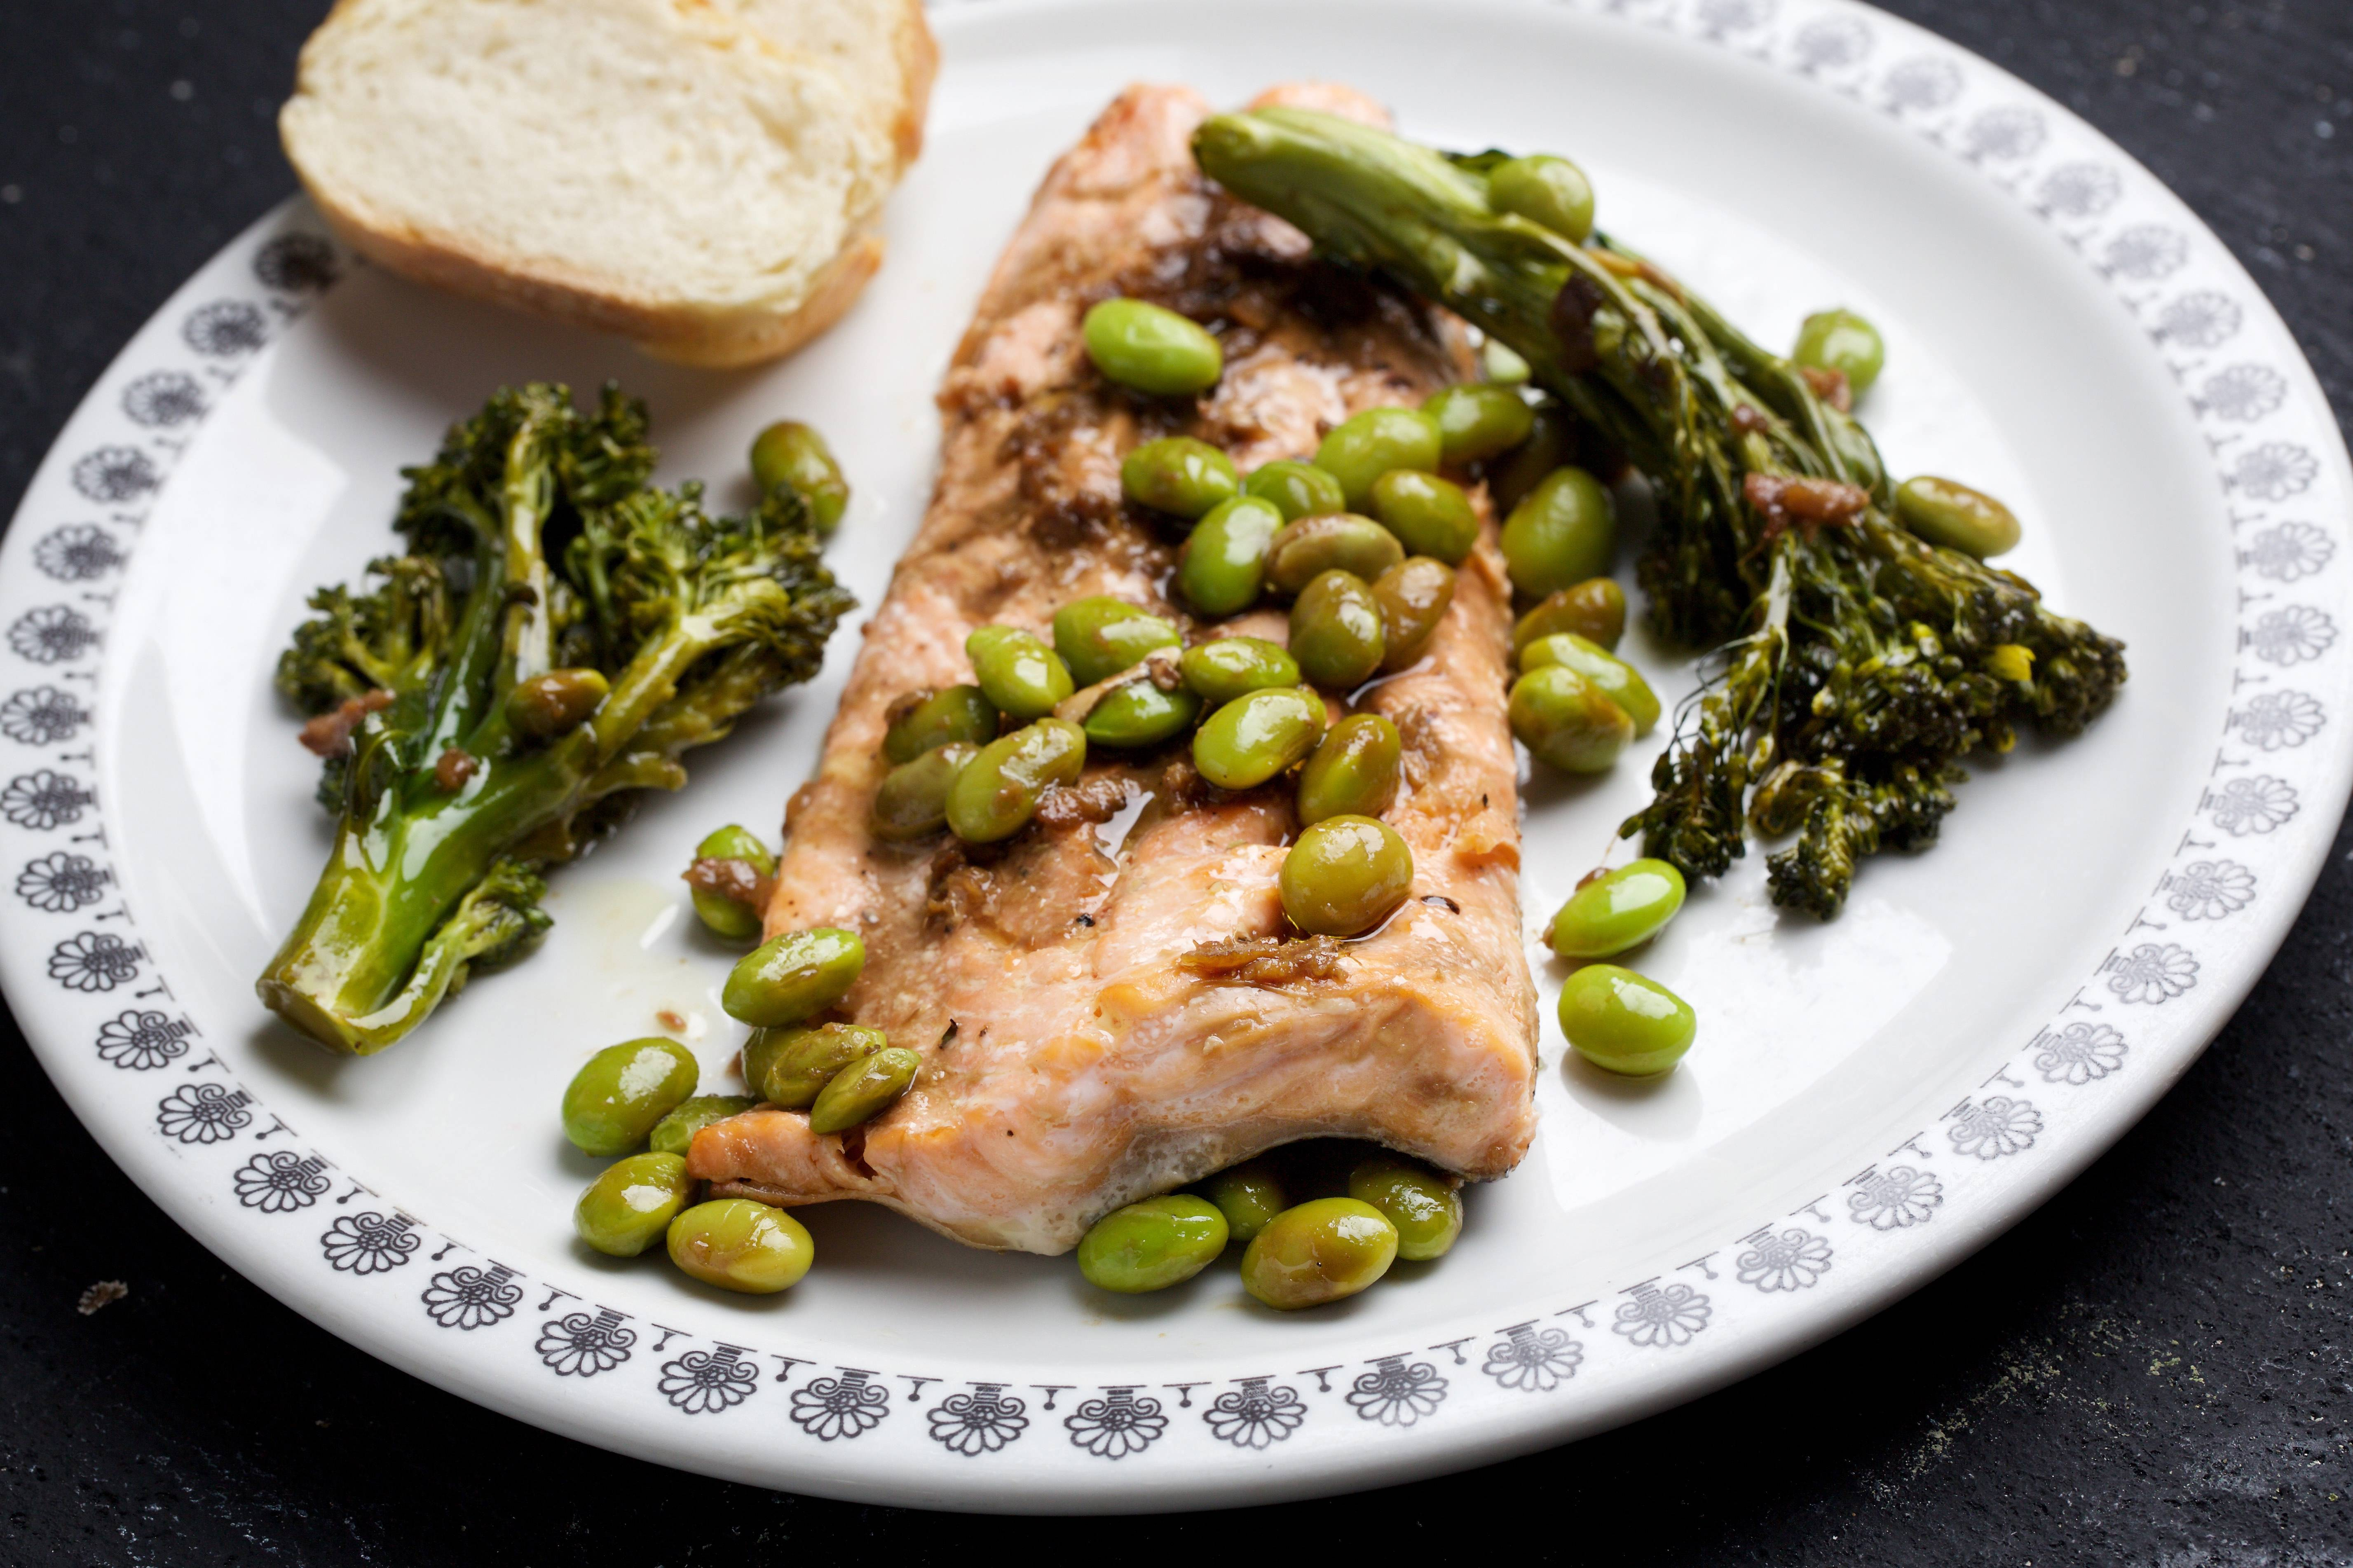 Arctic Char, Broccolini and Edamame With Soy-Ginger Sauce